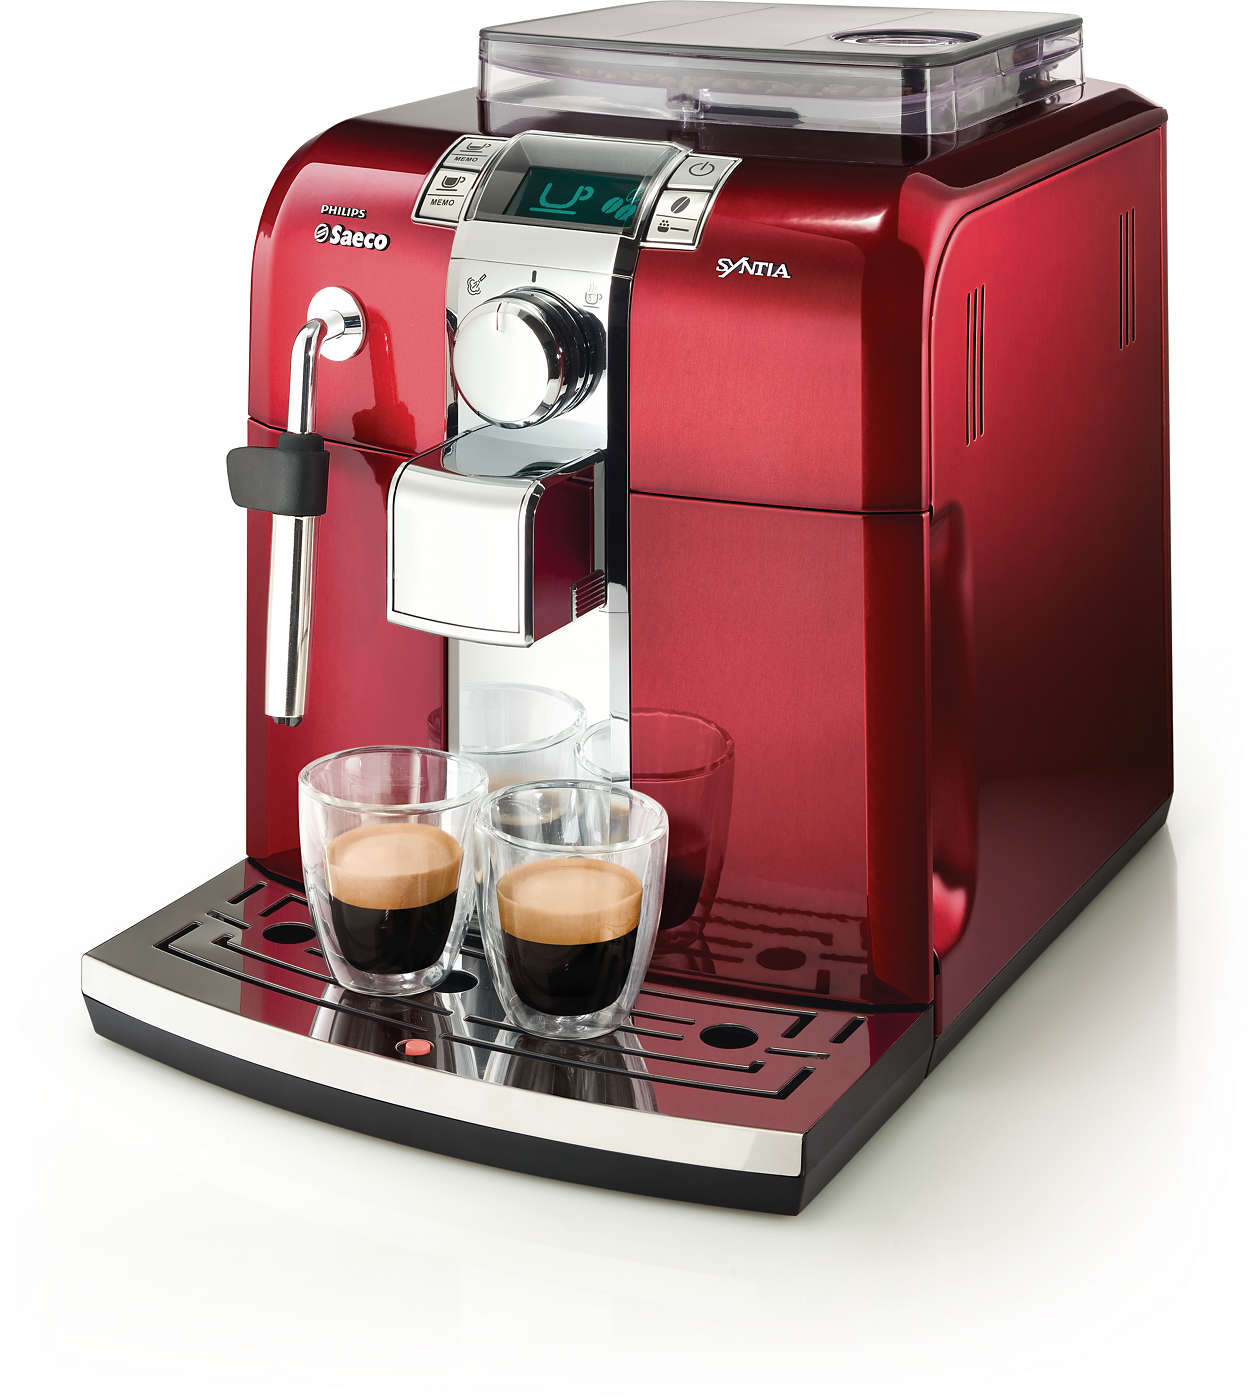 super automatic espresso machine hd8837 32 saeco. Black Bedroom Furniture Sets. Home Design Ideas